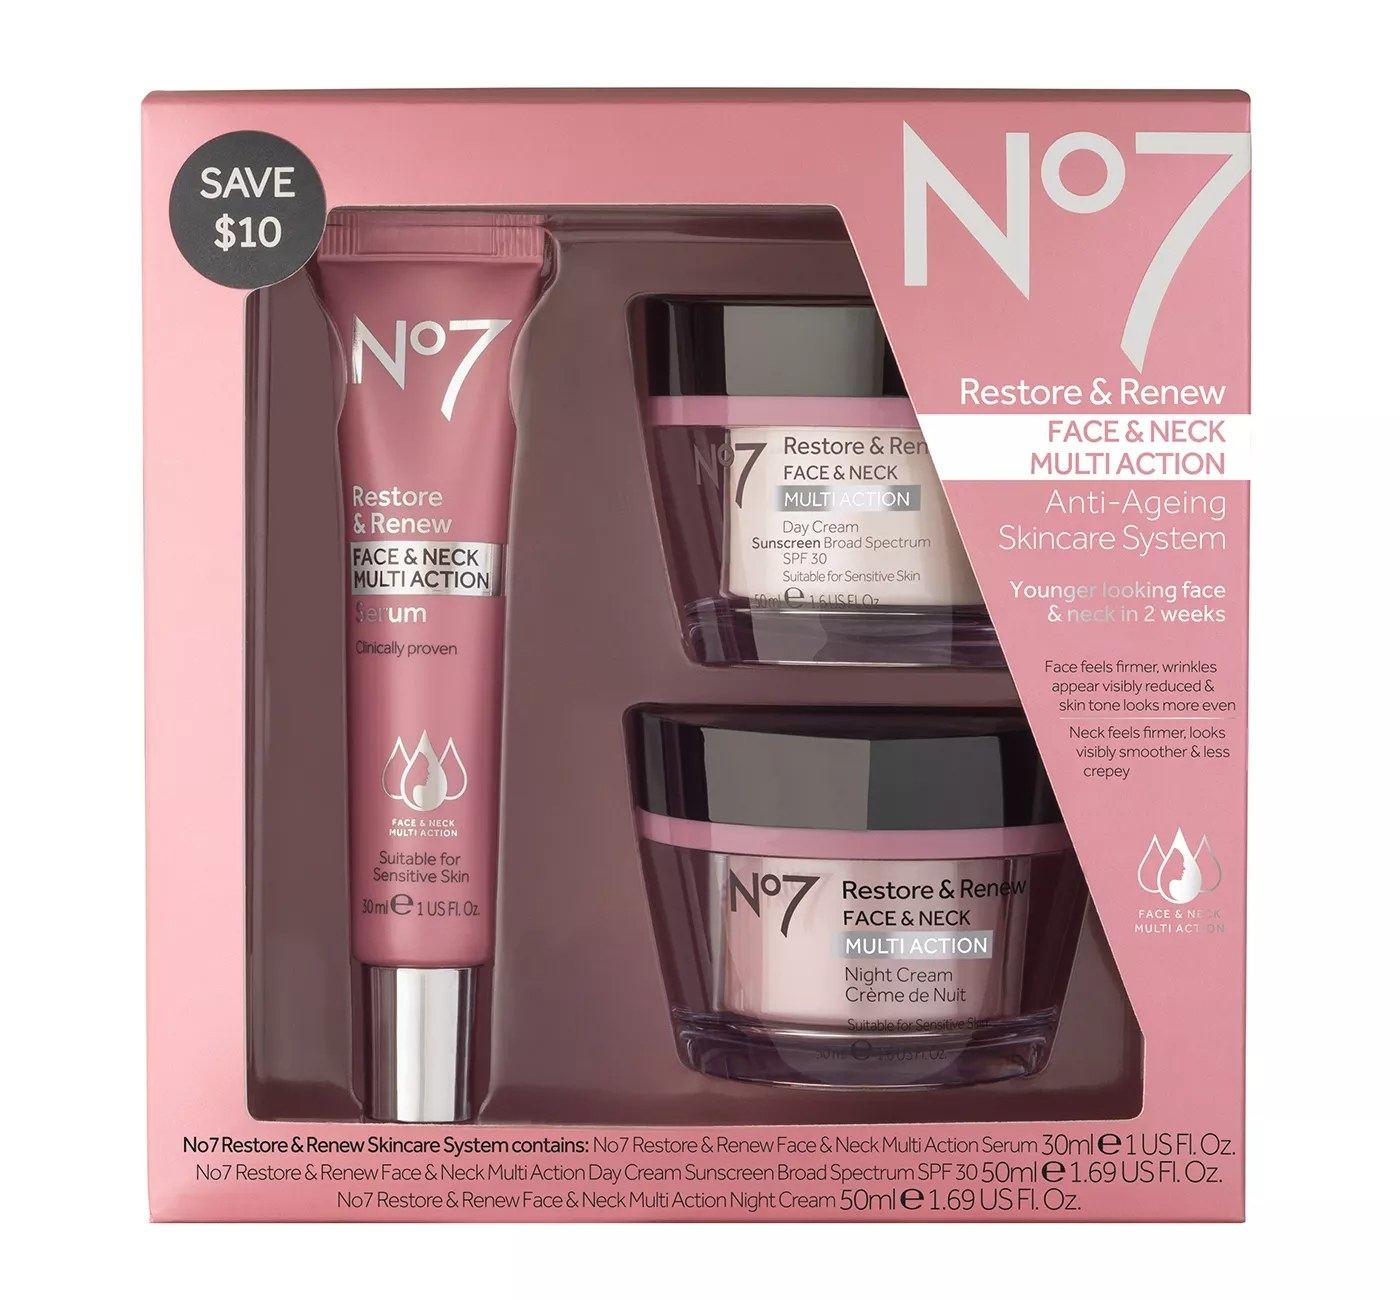 No7 Restore & Renew Face & Neck Multi-Action Anti-Ageing Skincare System